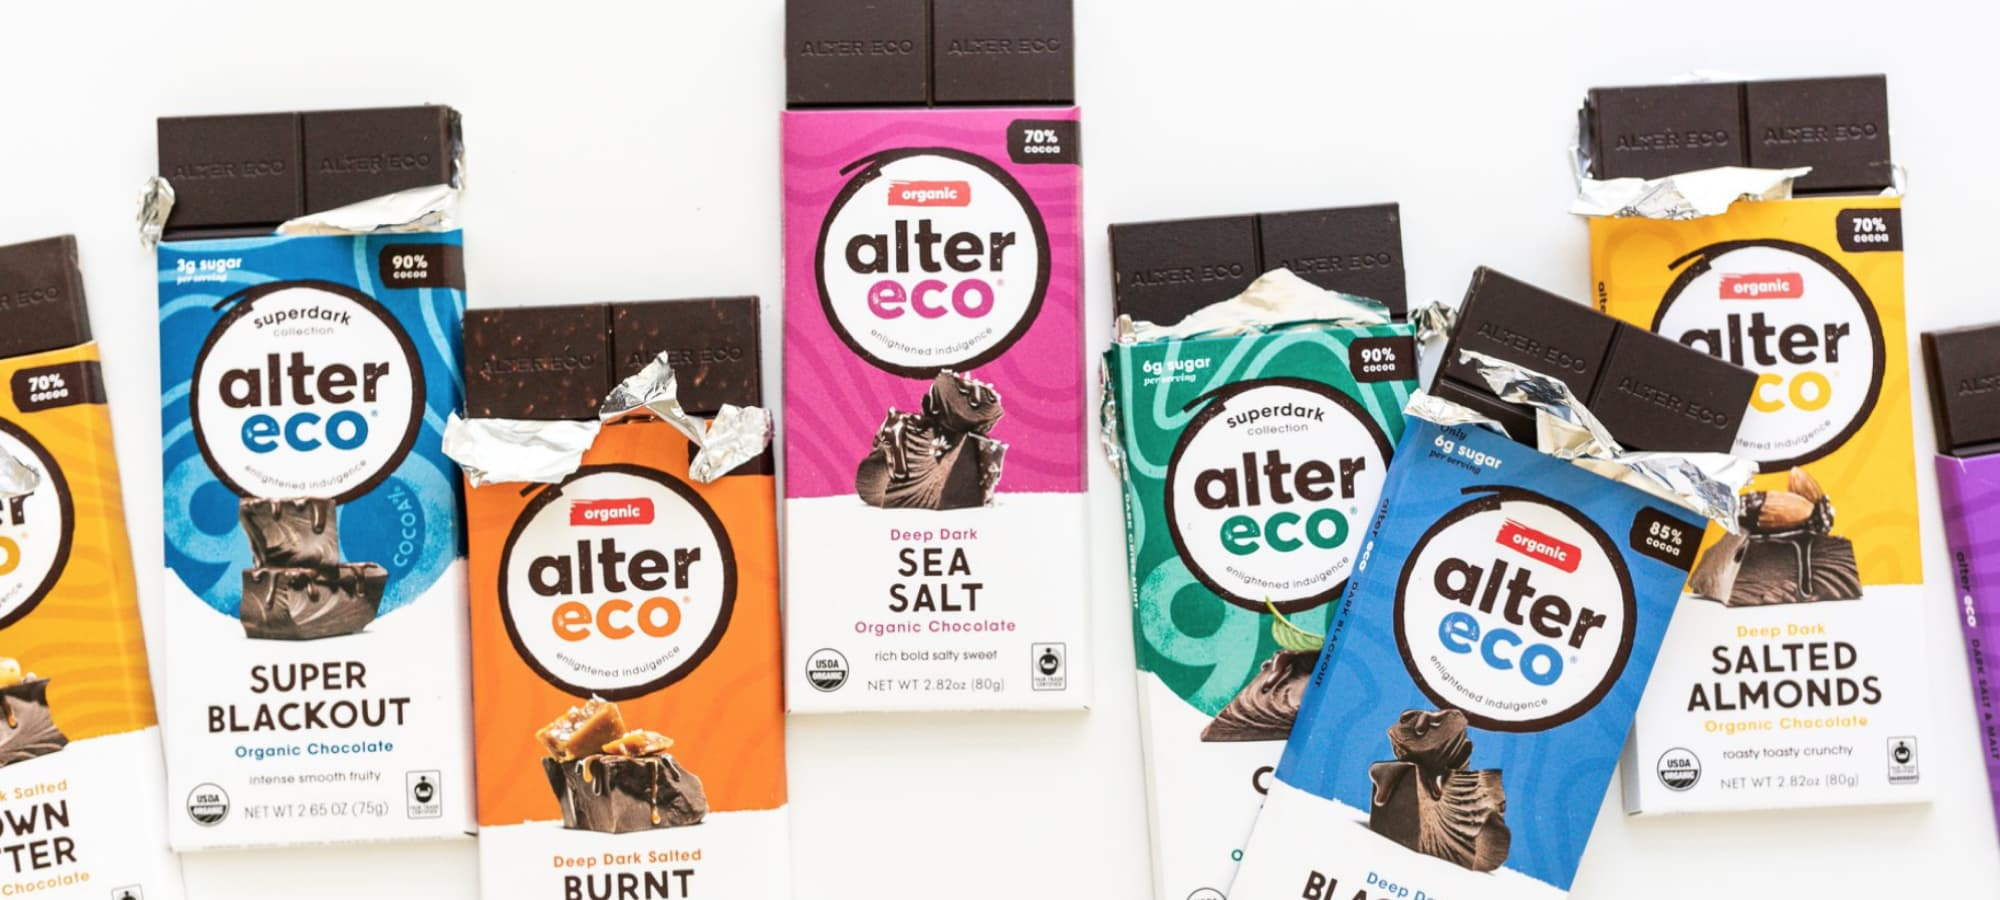 collection of Alter Eco chocolate bars